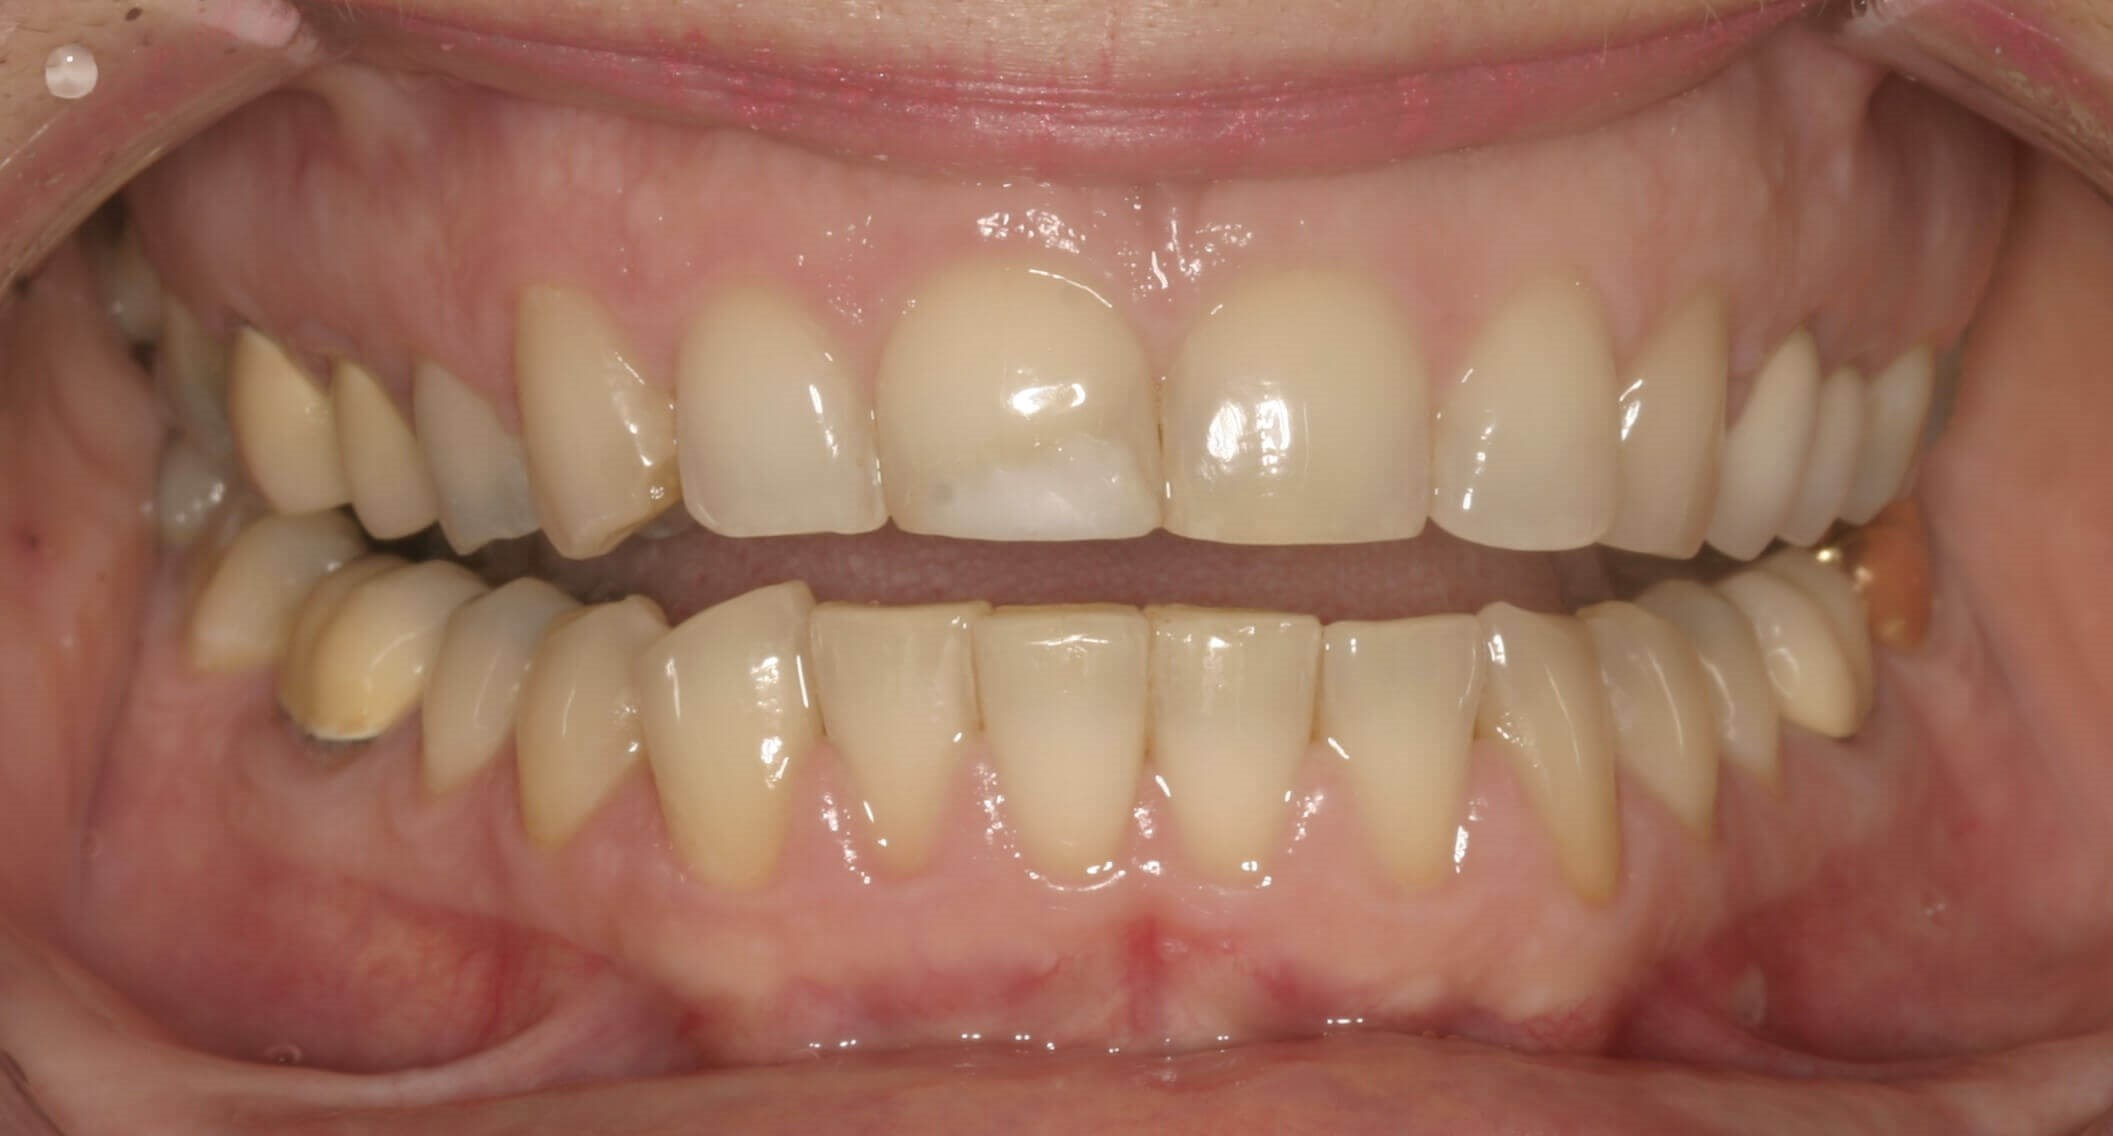 SmilesNY Porcelain Veneers Before